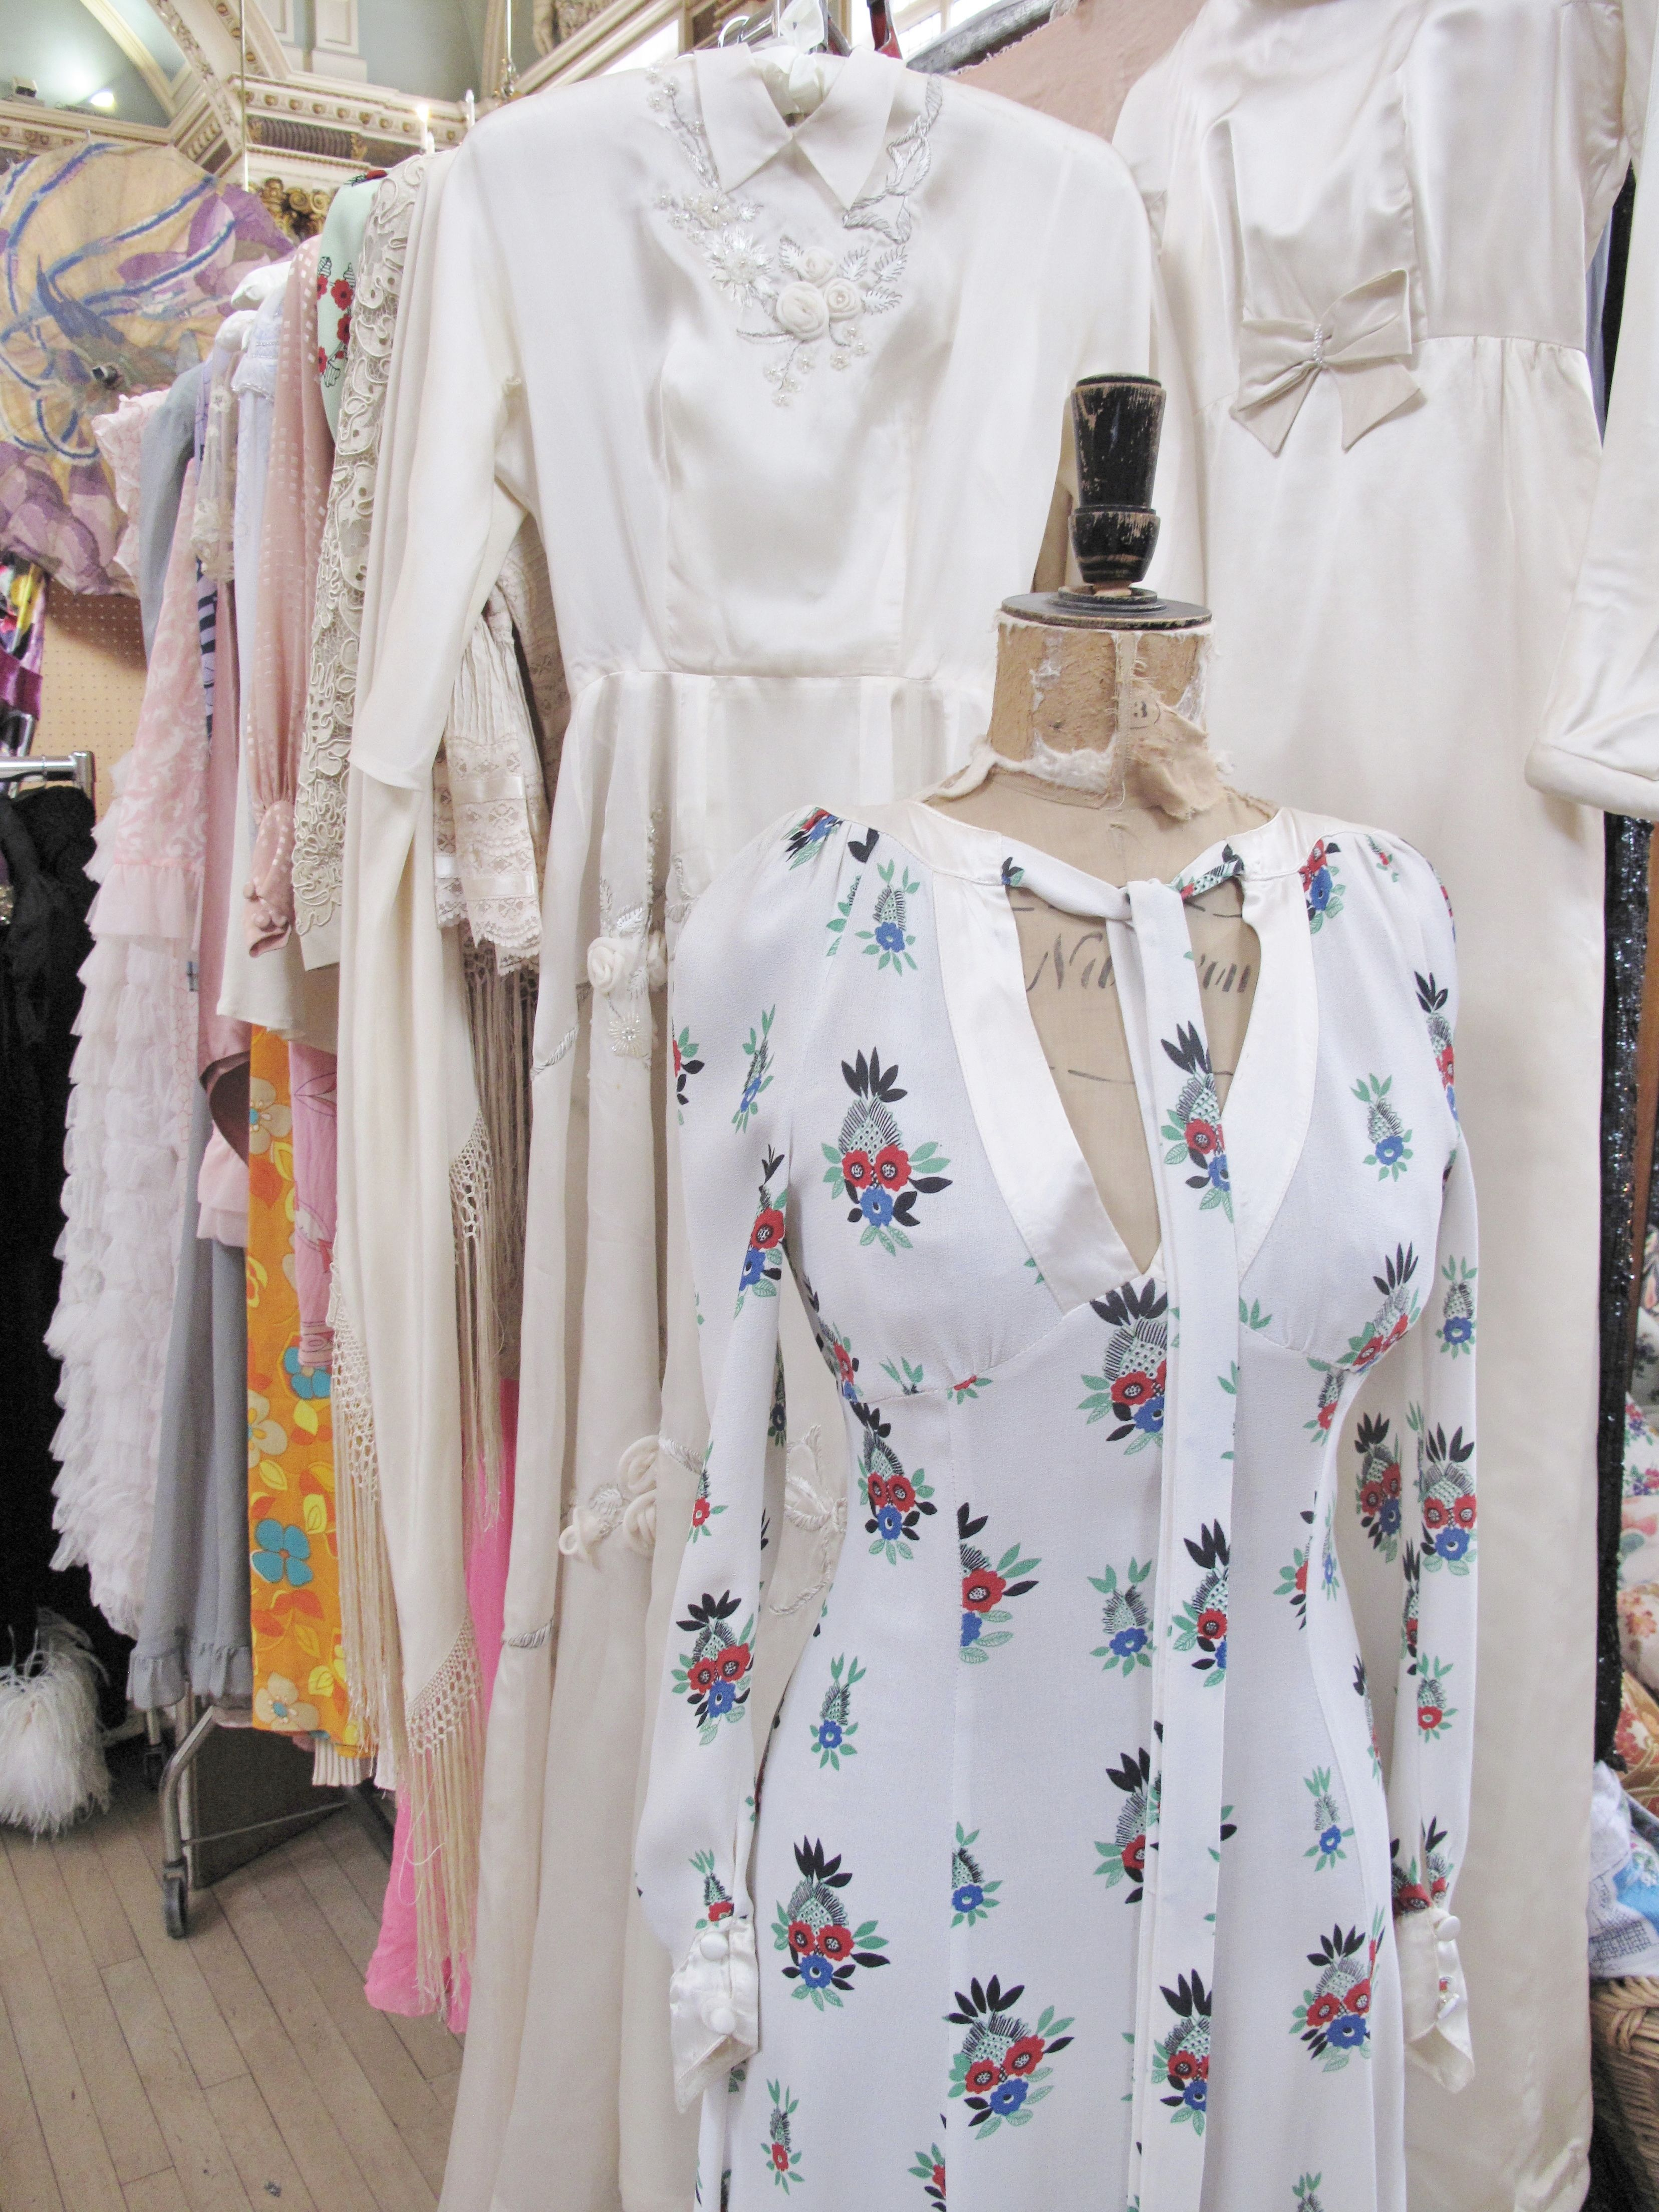 Ossie clark dress with ceia birtwell vintage at frock me vintage